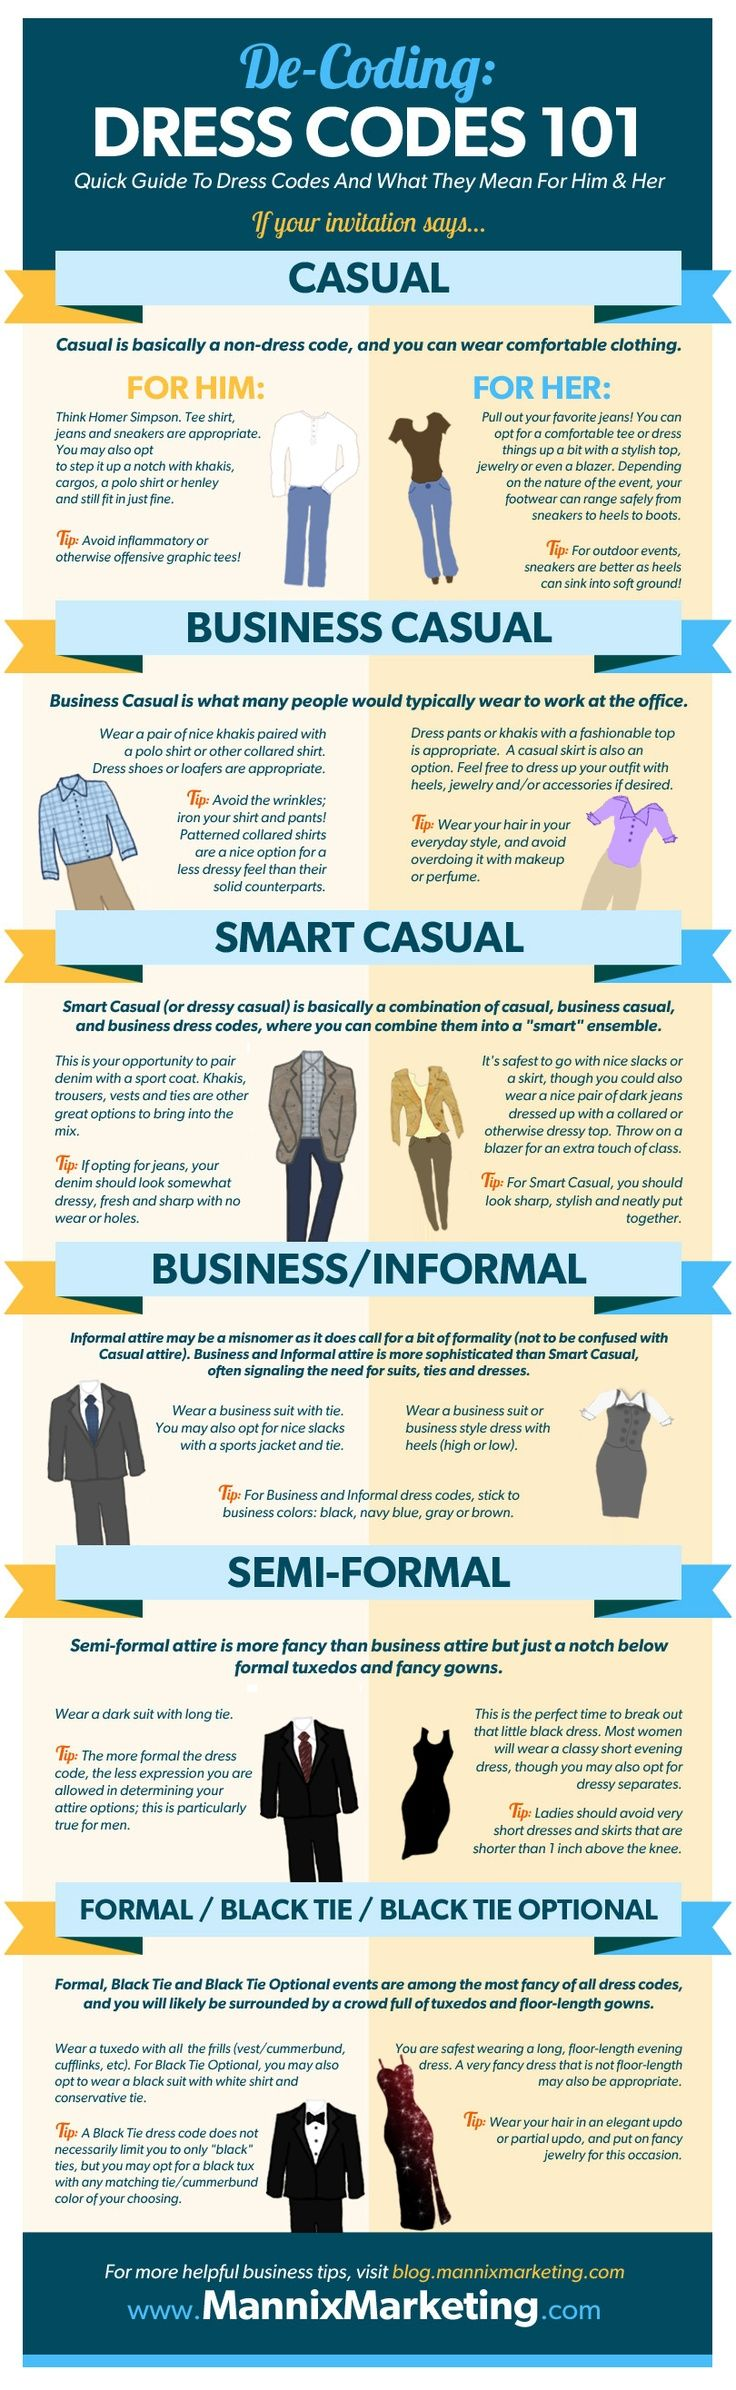 The tips for what is acceptable to wear into the office